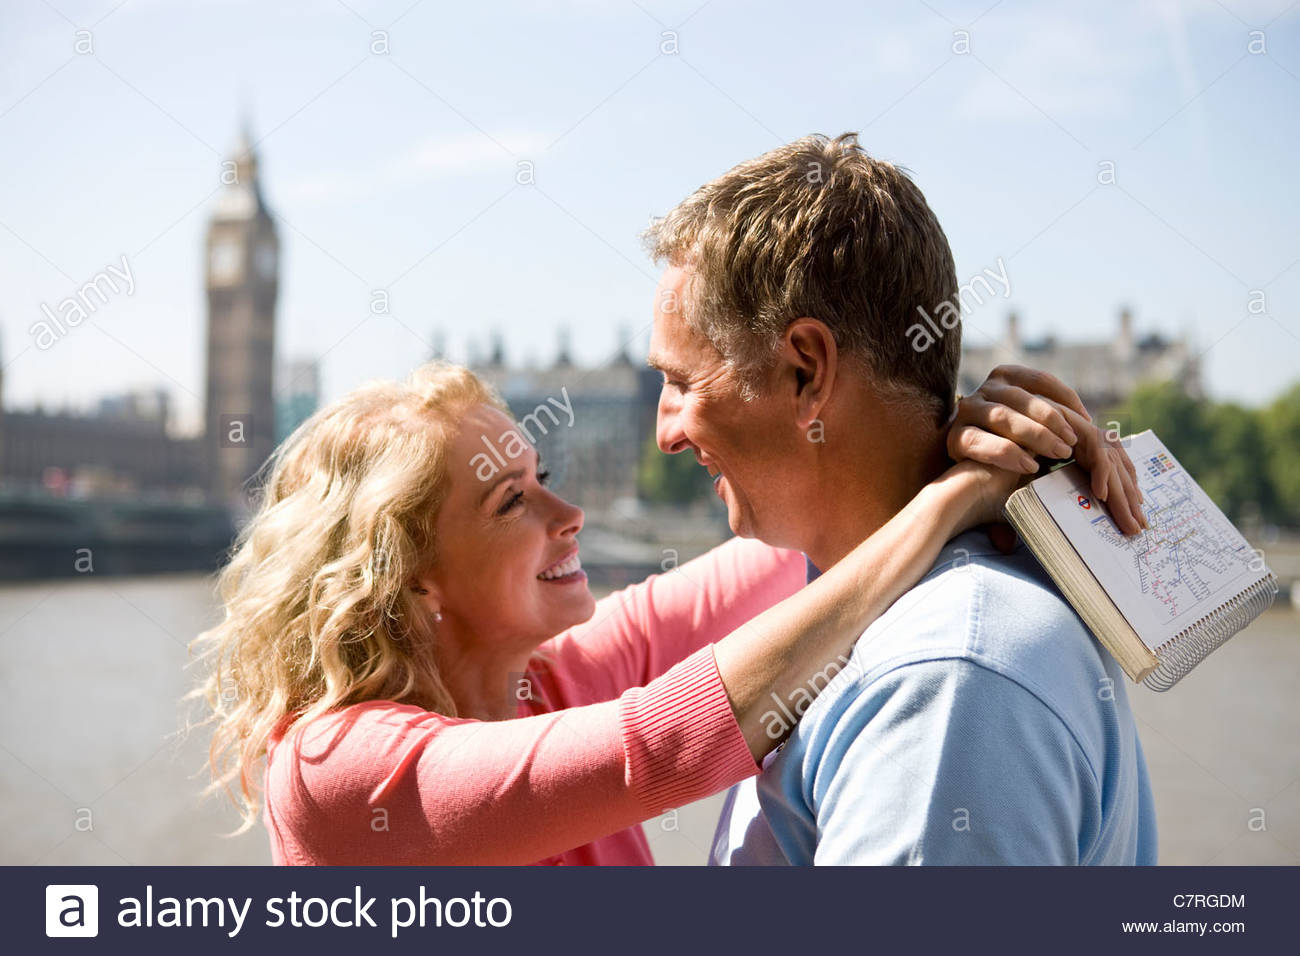 A middle-aged couple standing near the Houses of Parliament, embracing - Stock Image